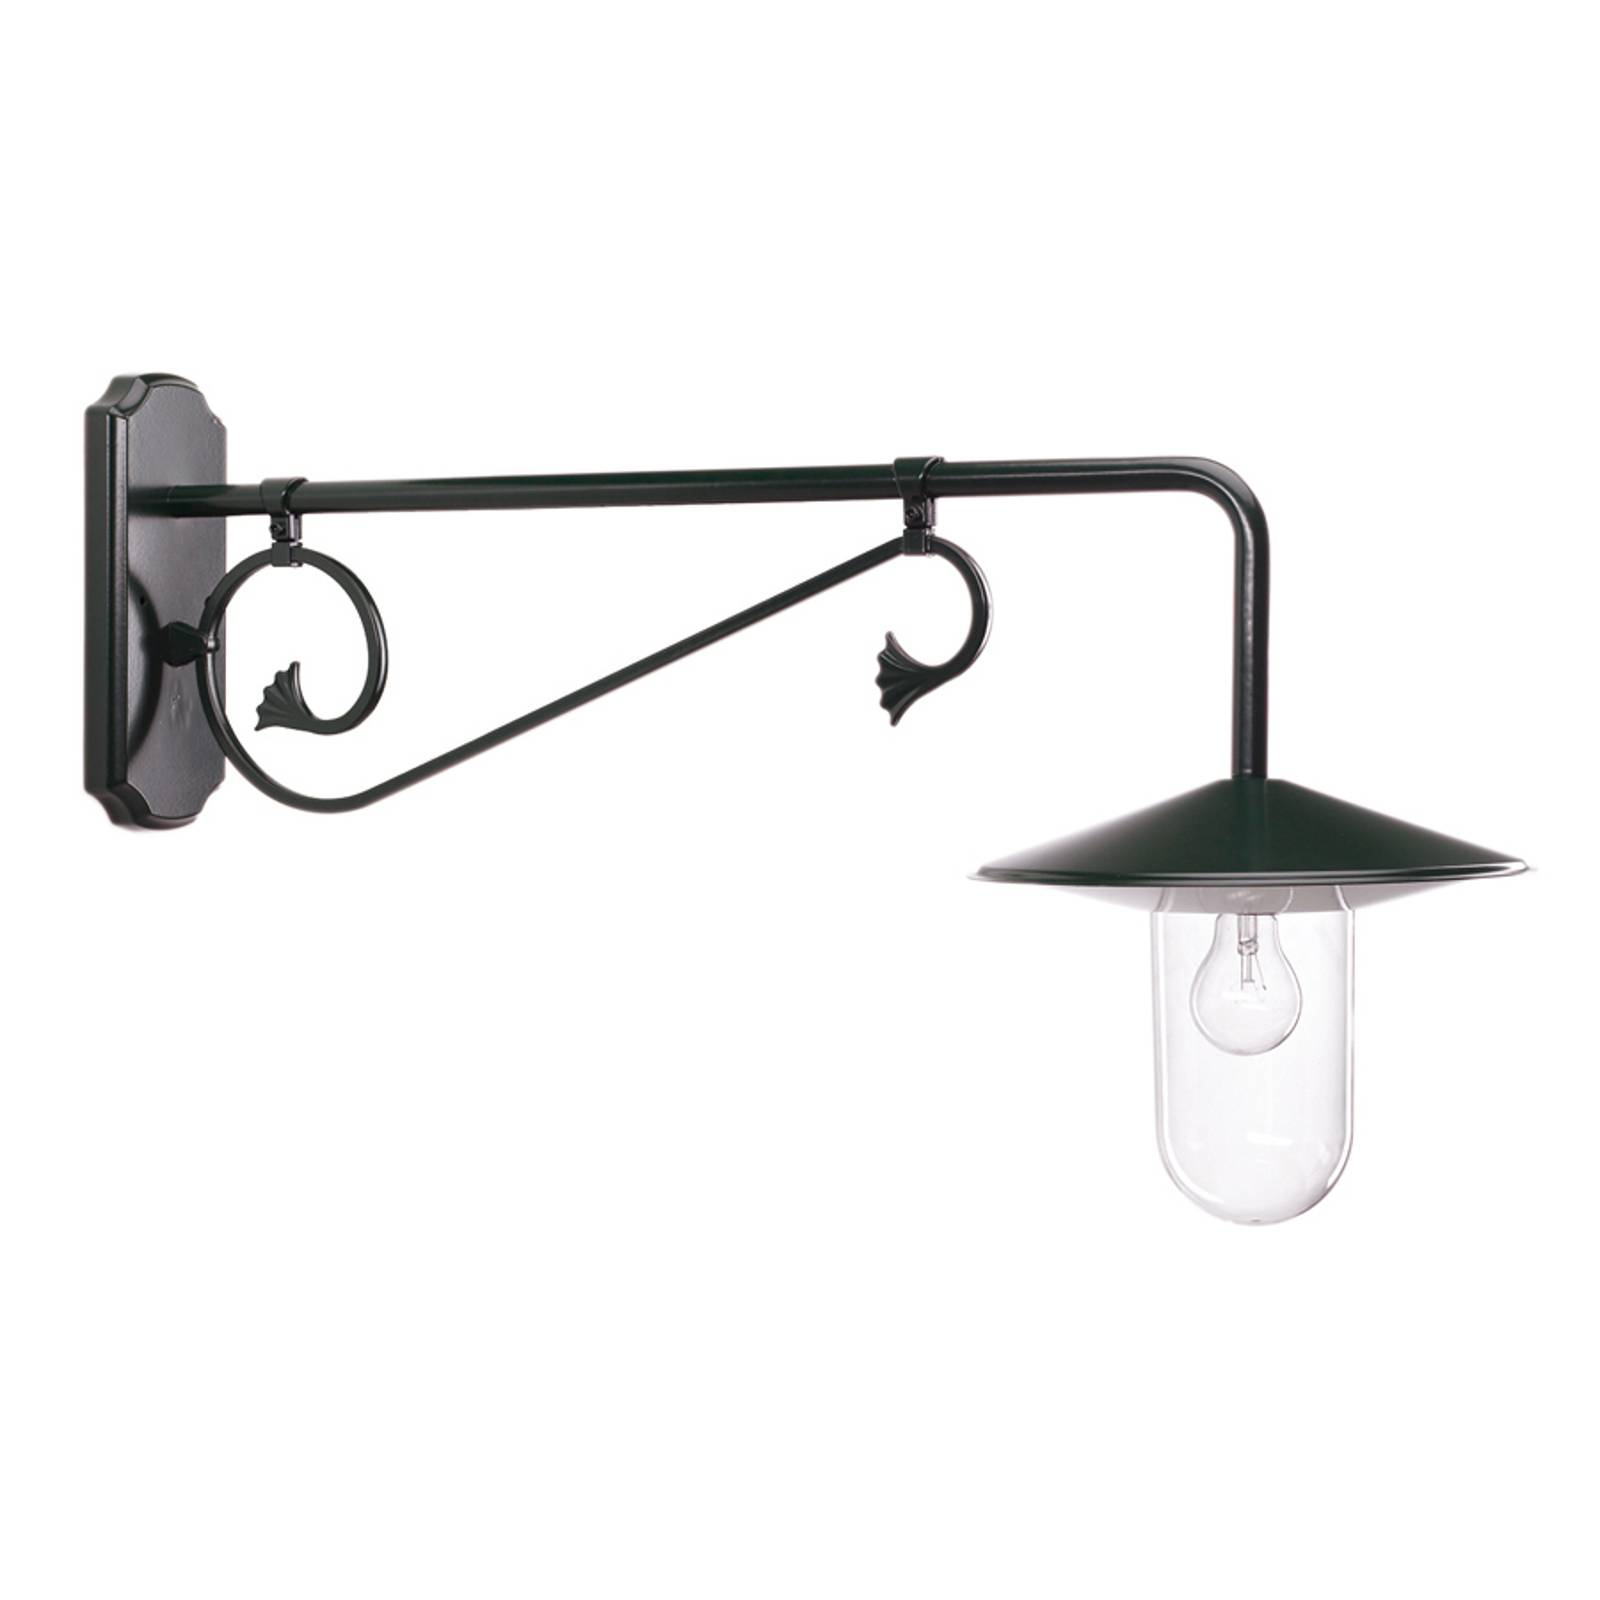 Outdoor wall light Louvre, 90 cm deep, grey/matt from K. S. Verlichting